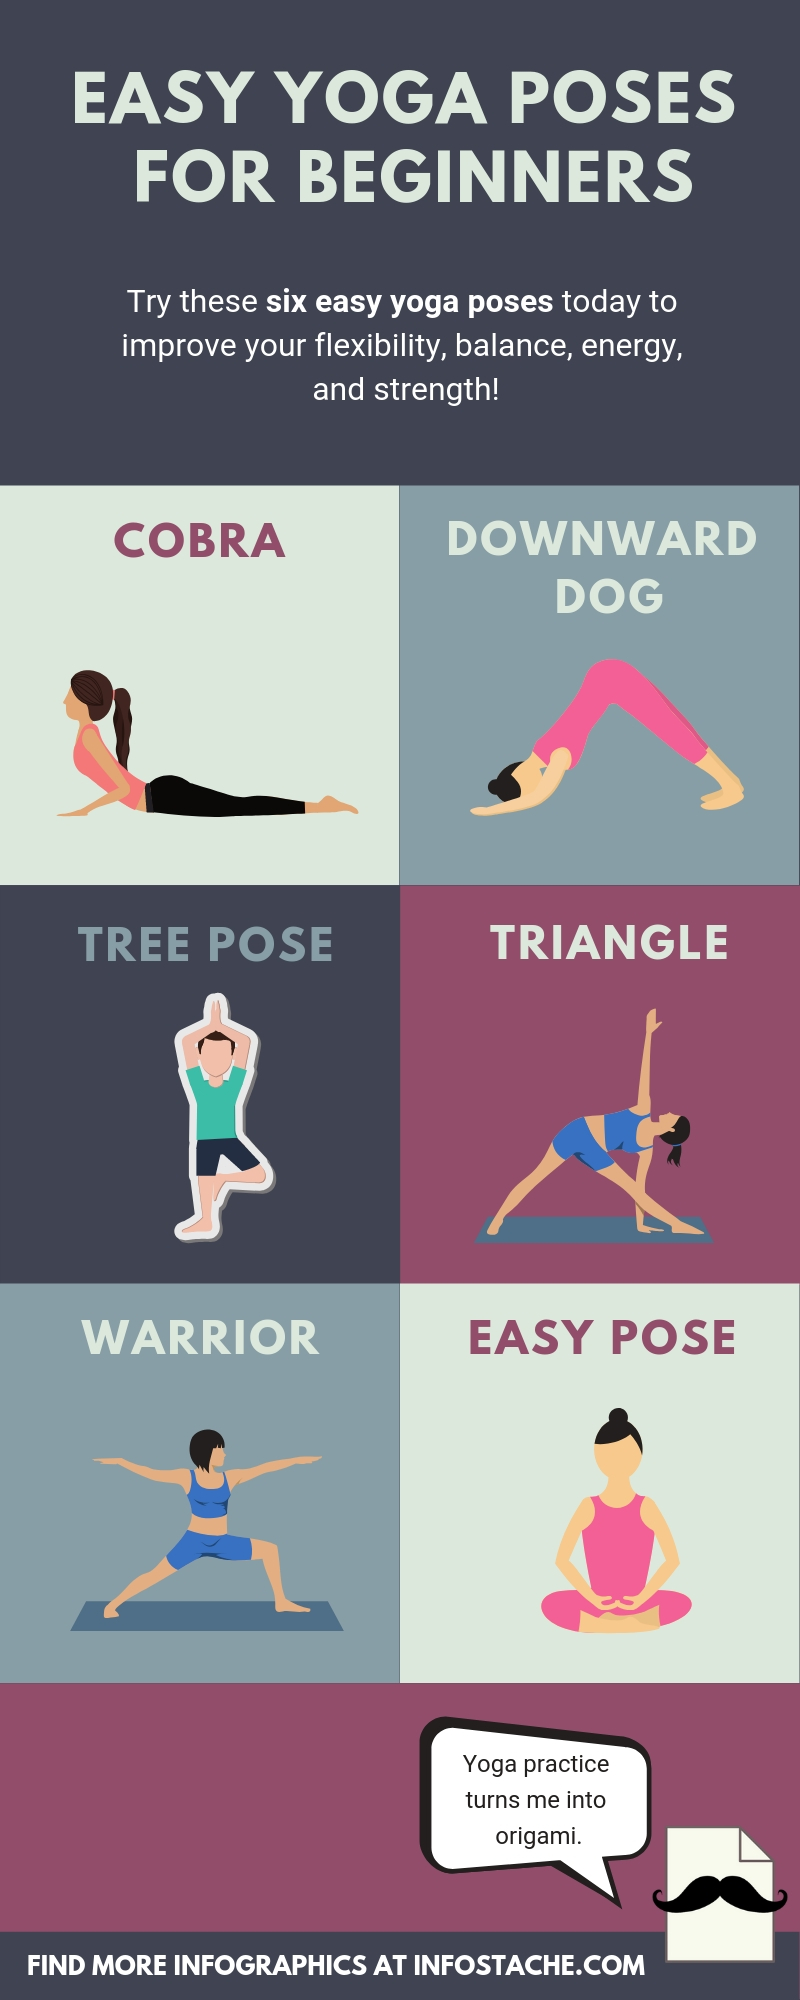 Easy Yoga Poses for Beginners [Infographic] - Infostache